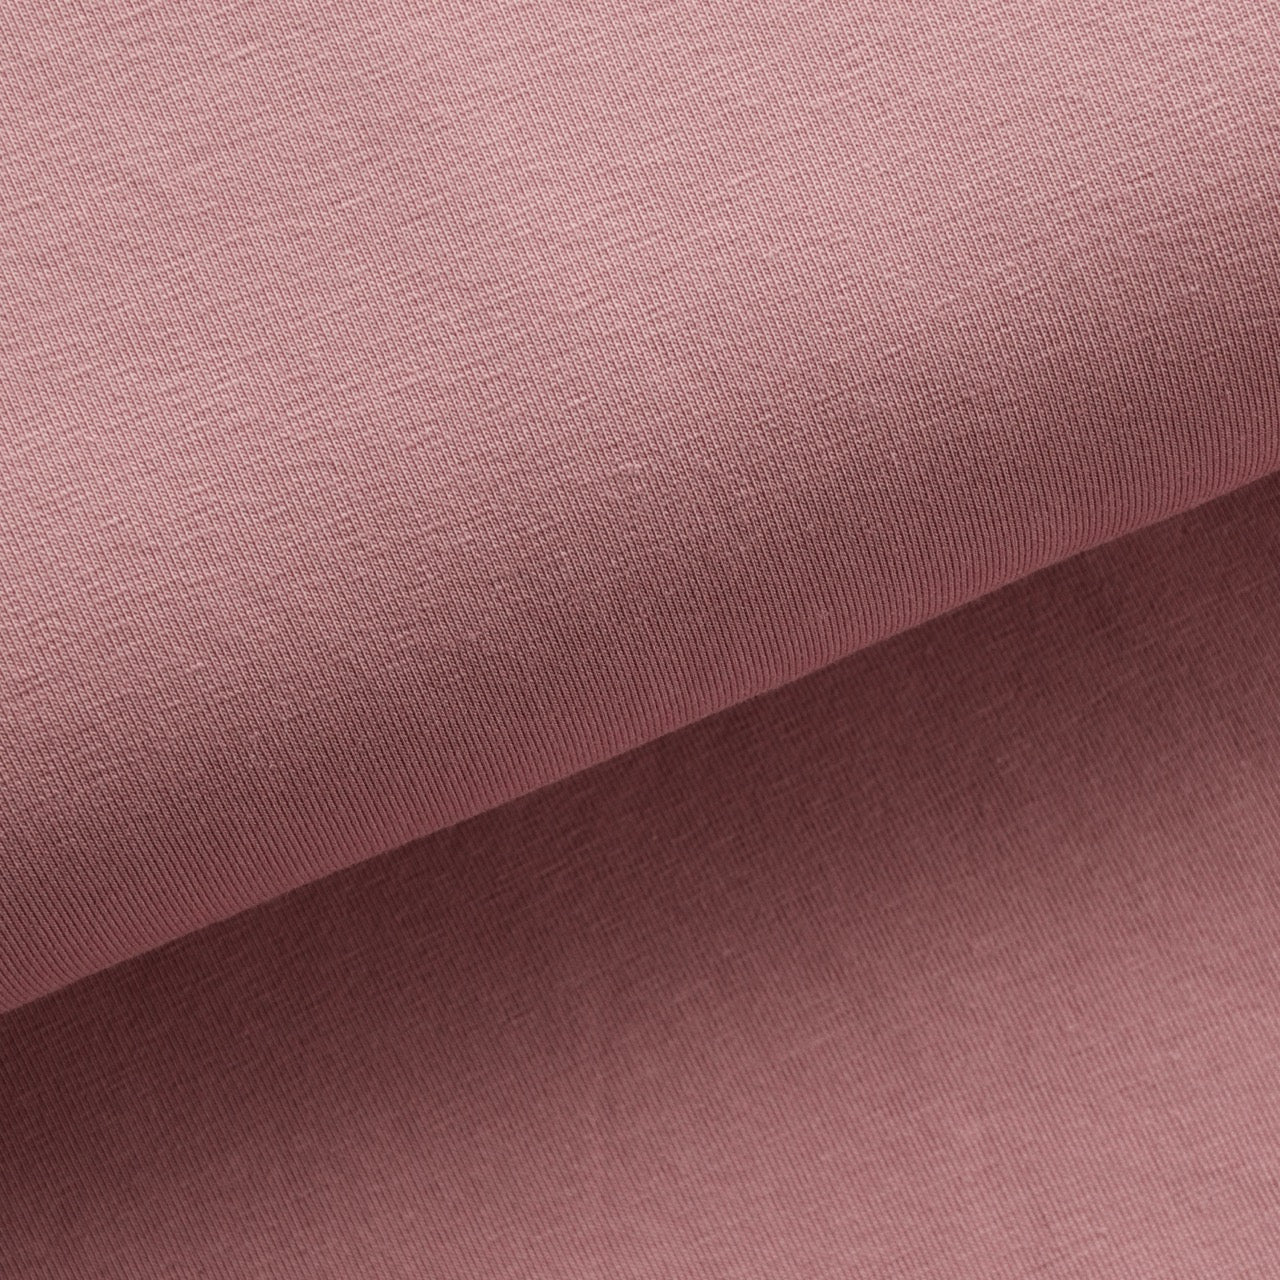 Cotton Jersey - Old Rose Pink - MaaiDesign